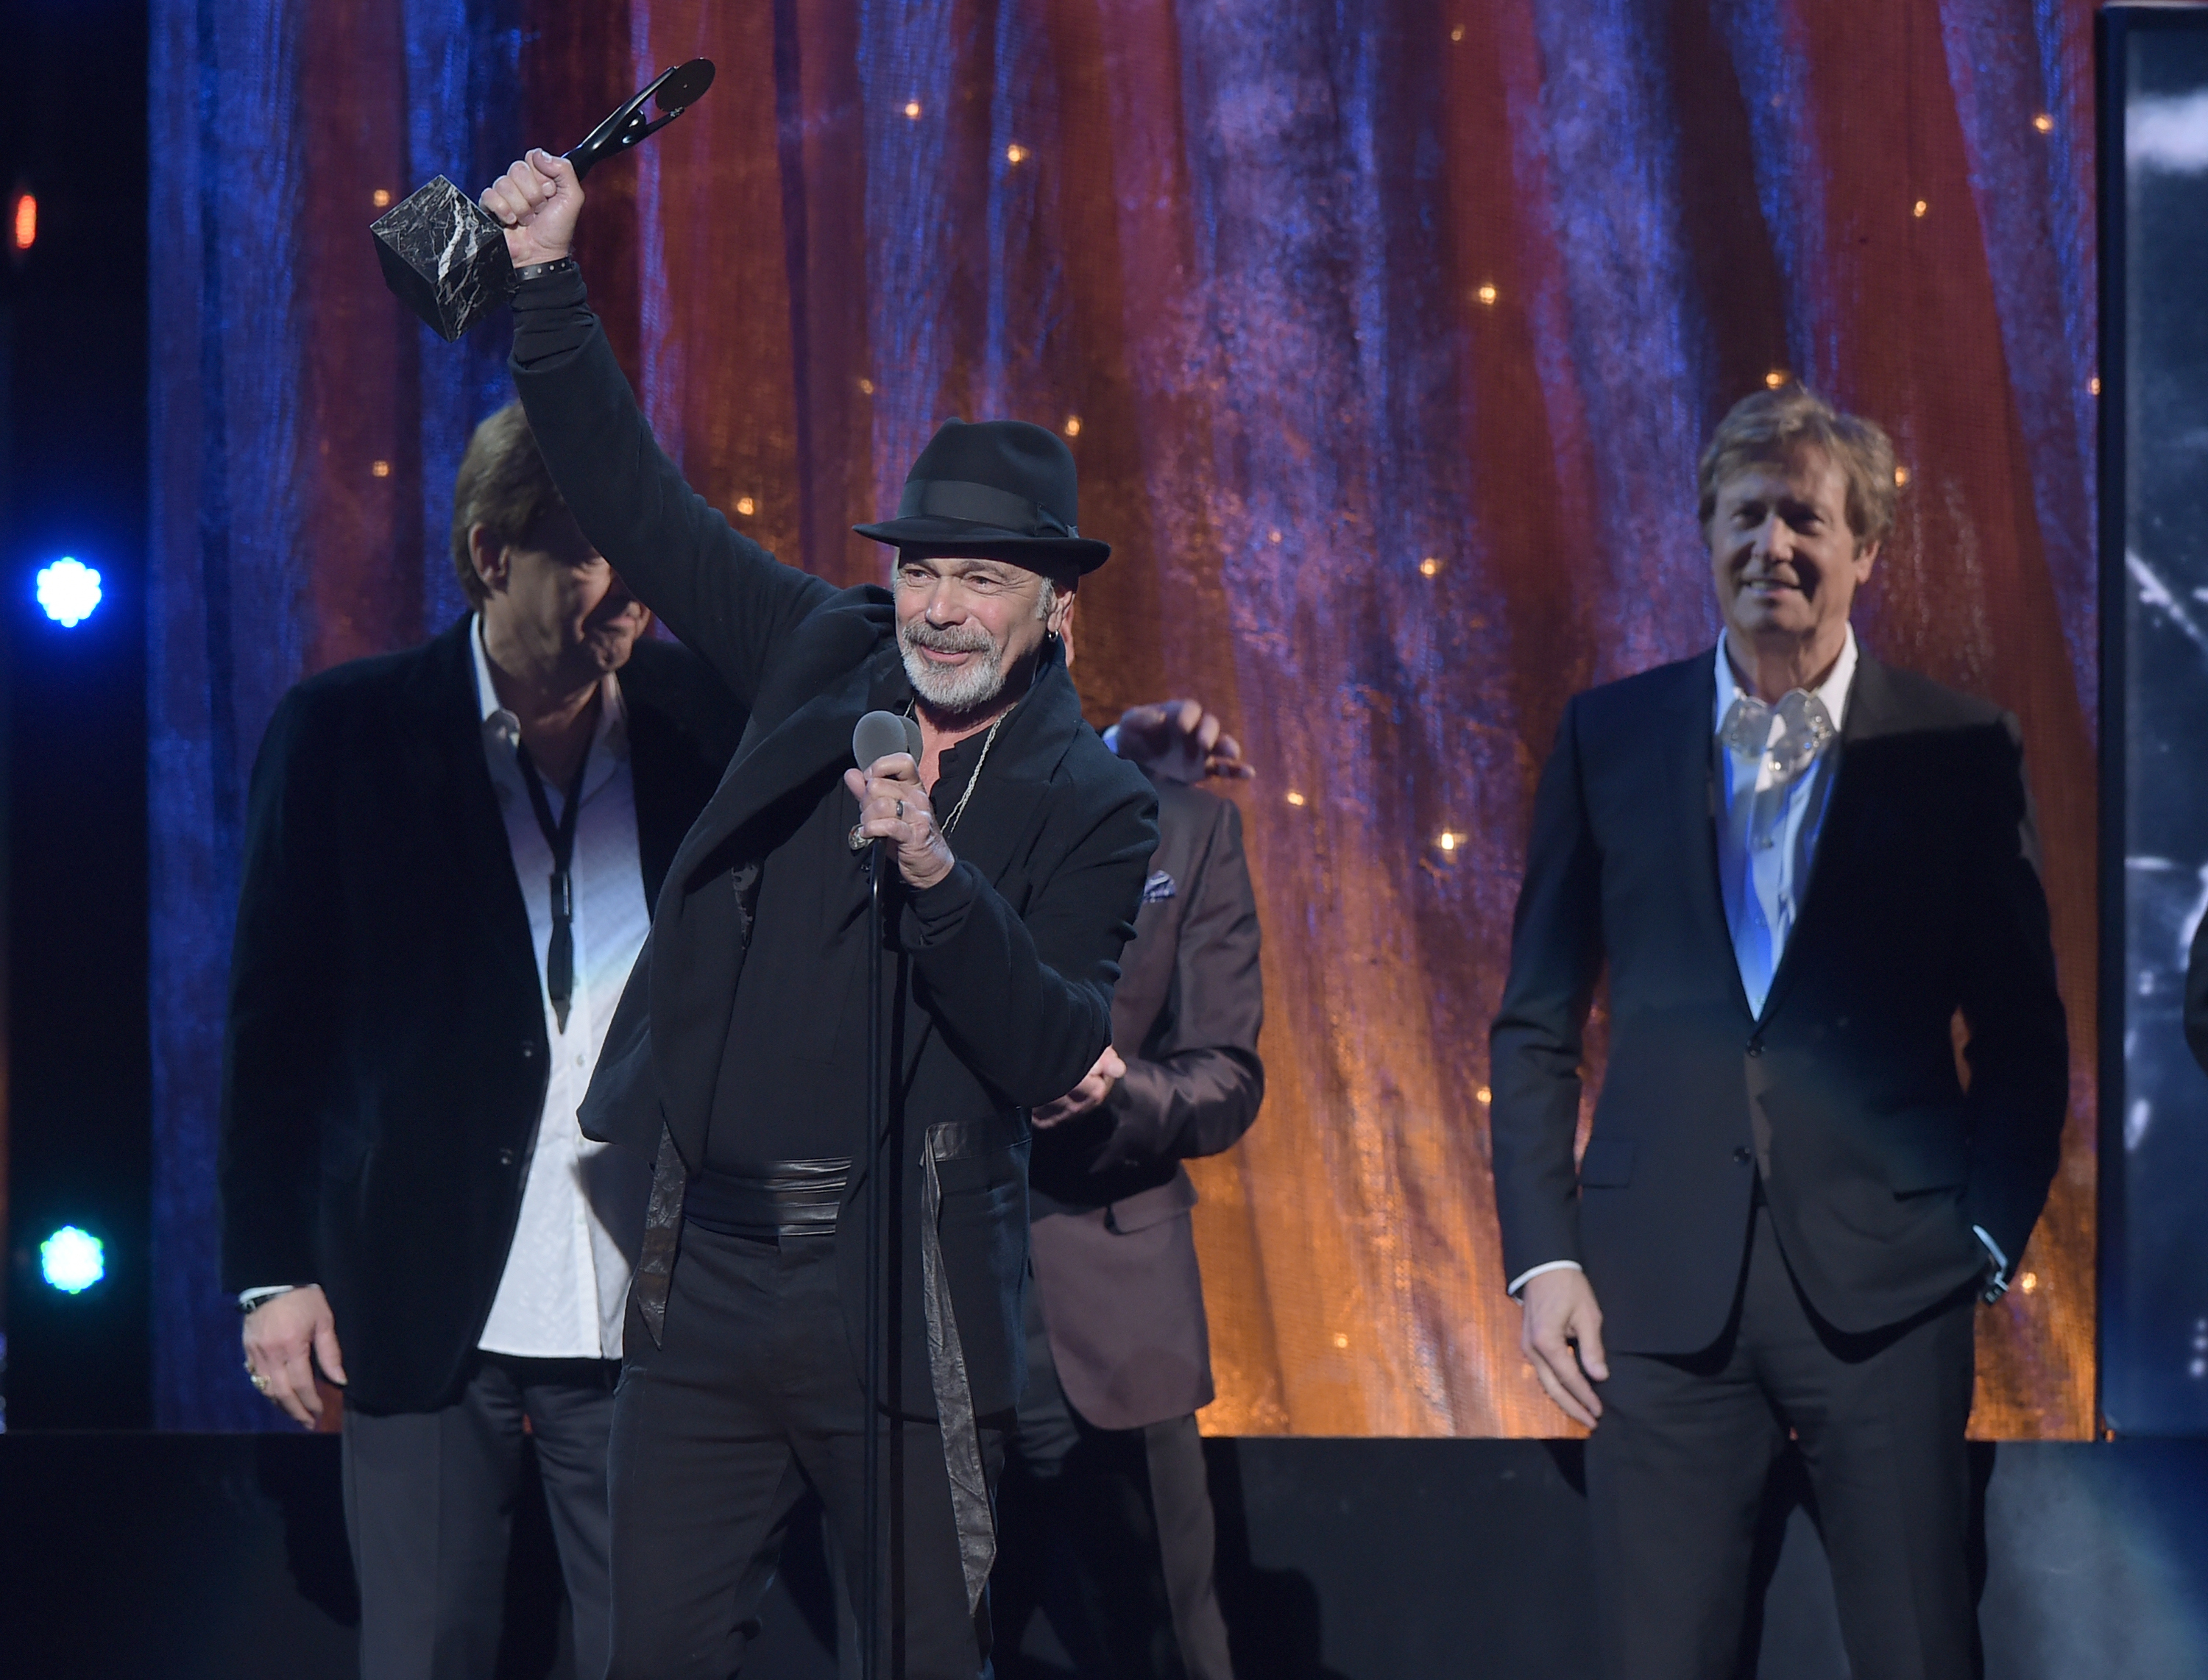 2d69135e10acd 15 Best Moments at the Rock and Roll Hall of Fame 2016 Induction ...